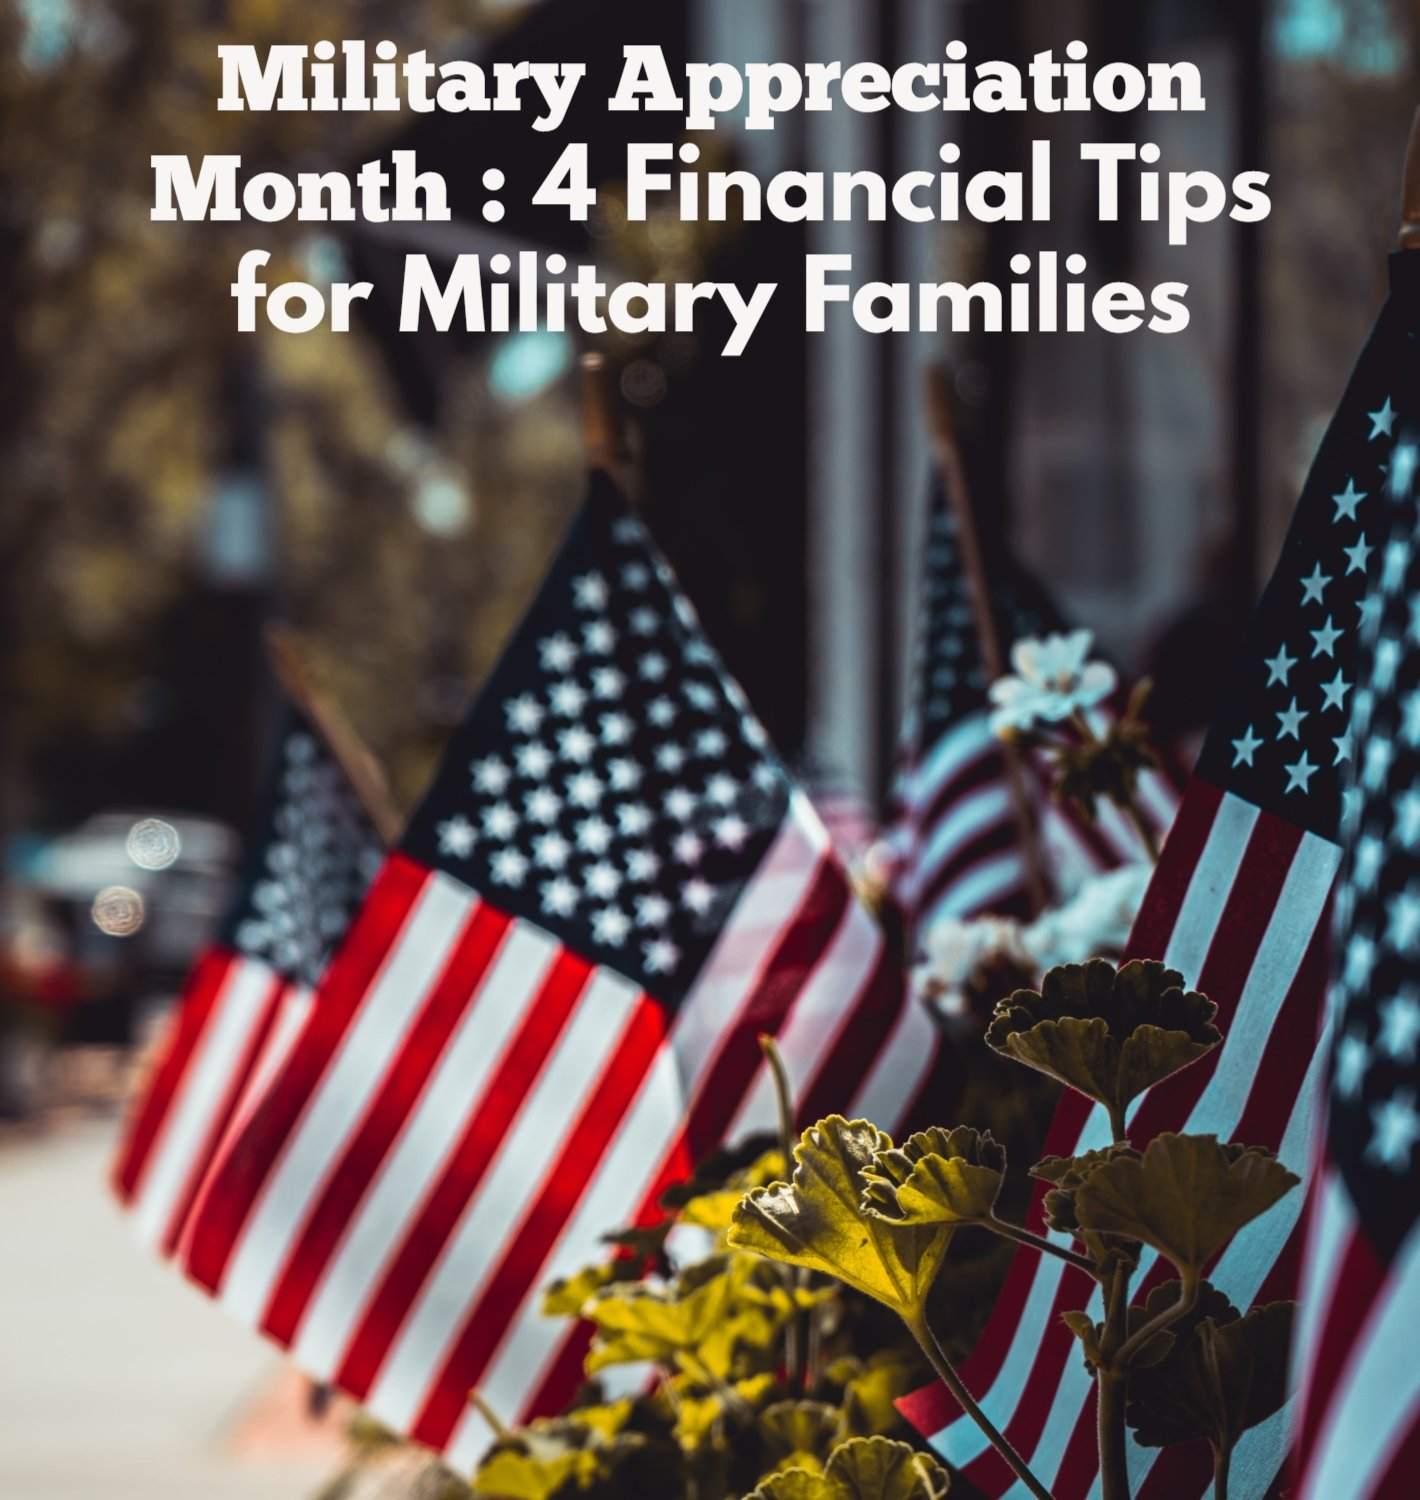 4 Financial Tips for Military Families